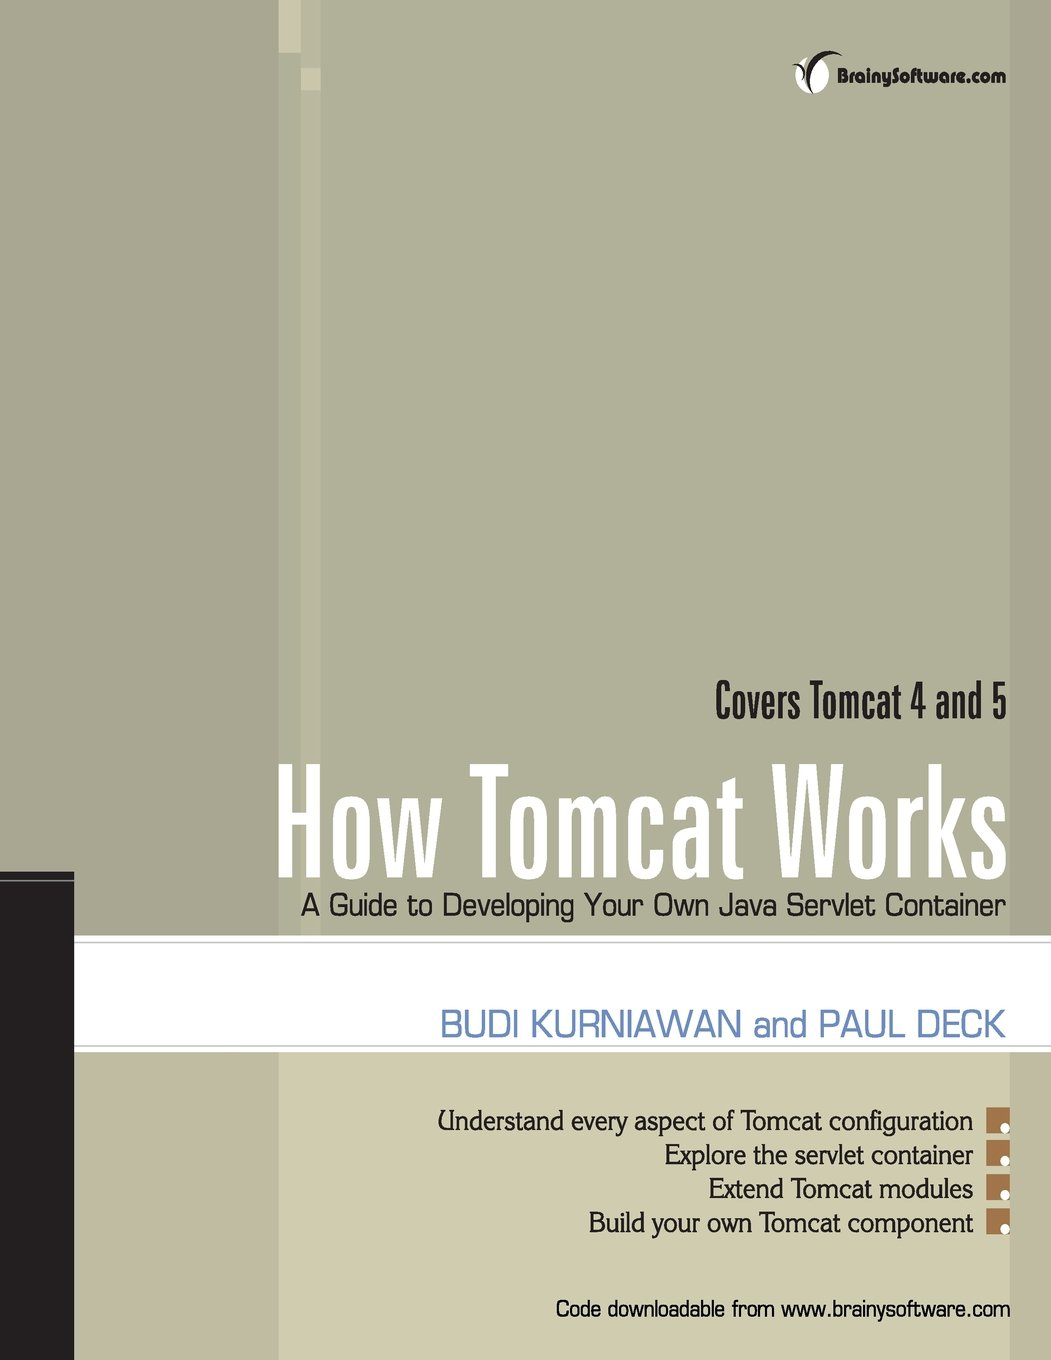 How tomcat works a guide to developing your own java servlet how tomcat works a guide to developing your own java servlet container budi kurniawan paul deck 9780975212806 amazon books baditri Images